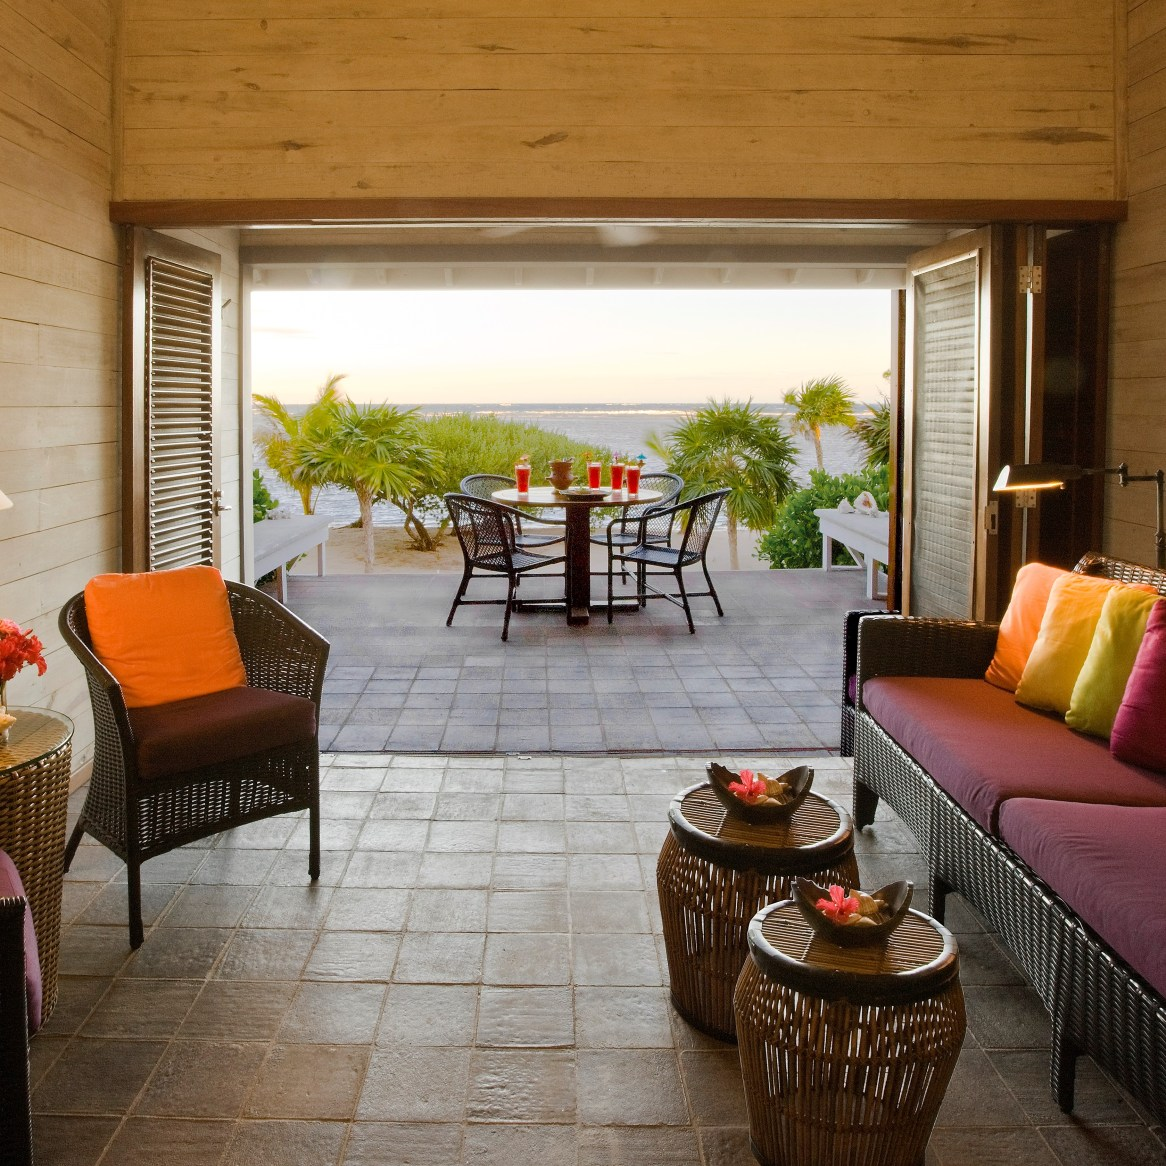 Oceanfront villas at the Resort offer an intimate retreat. (Courtesy Barefoot Cay Resort)